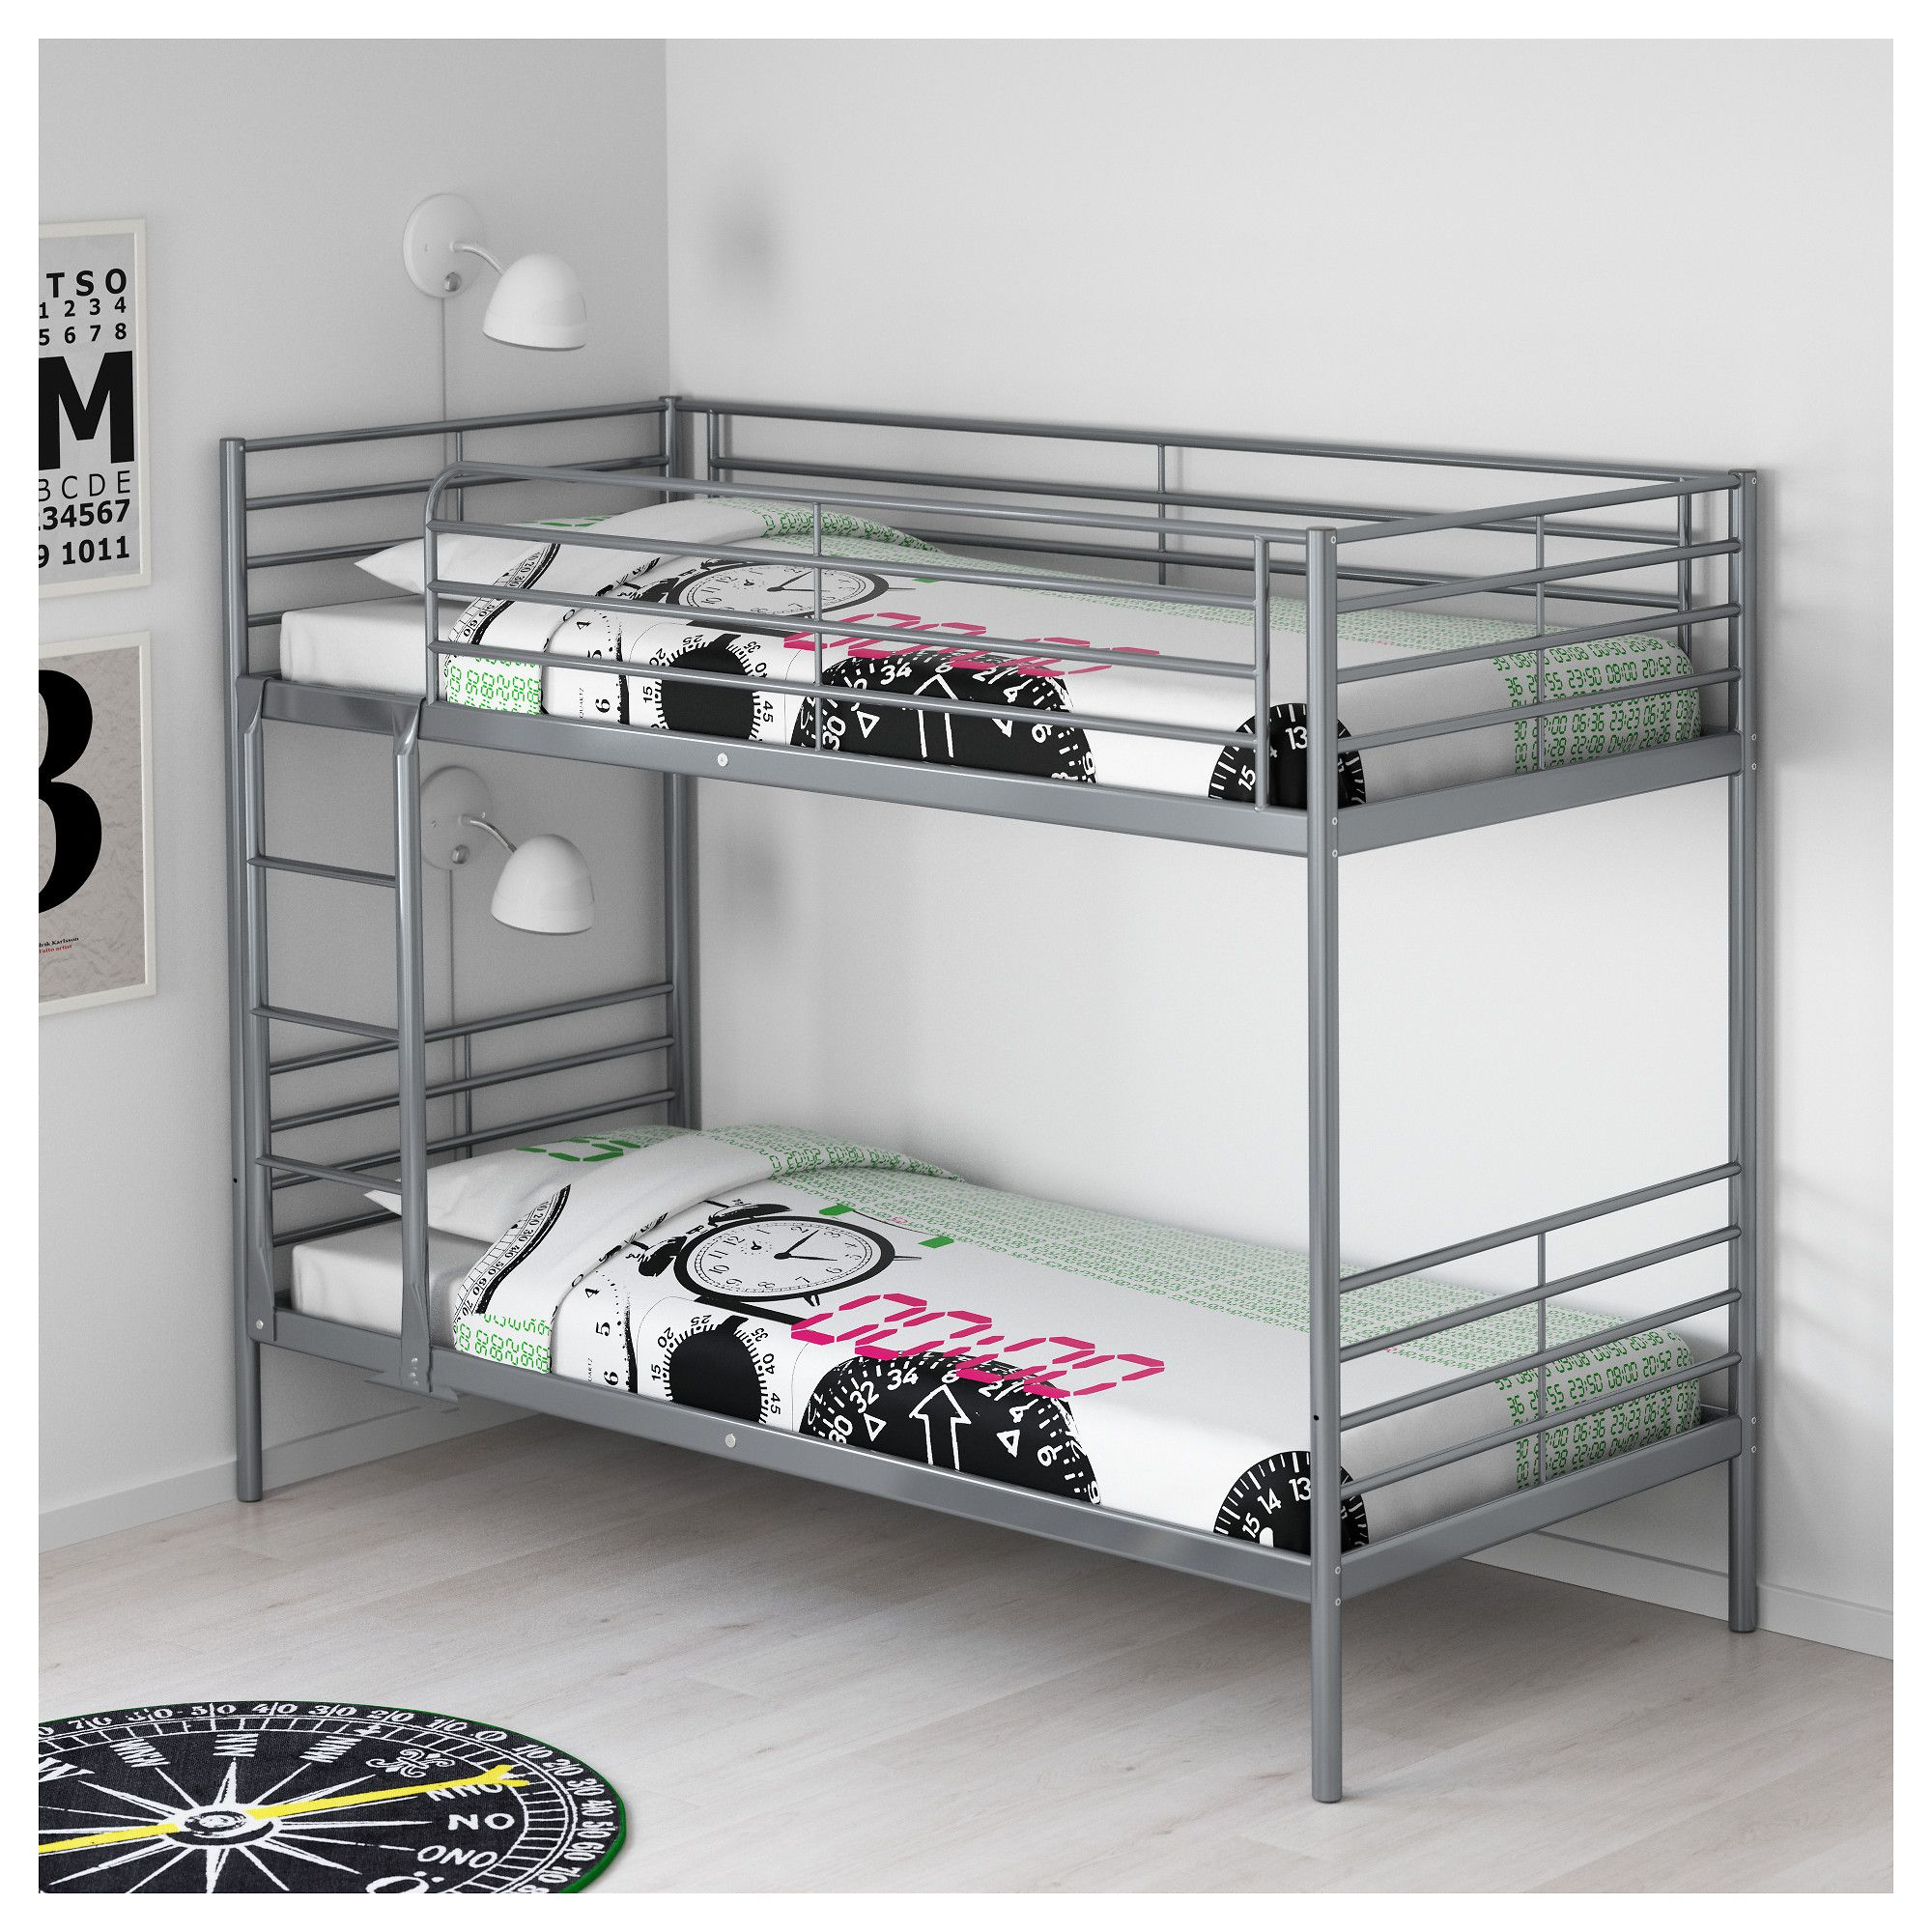 Furniture And Home Furnishings In 2019 Bunk Beds For